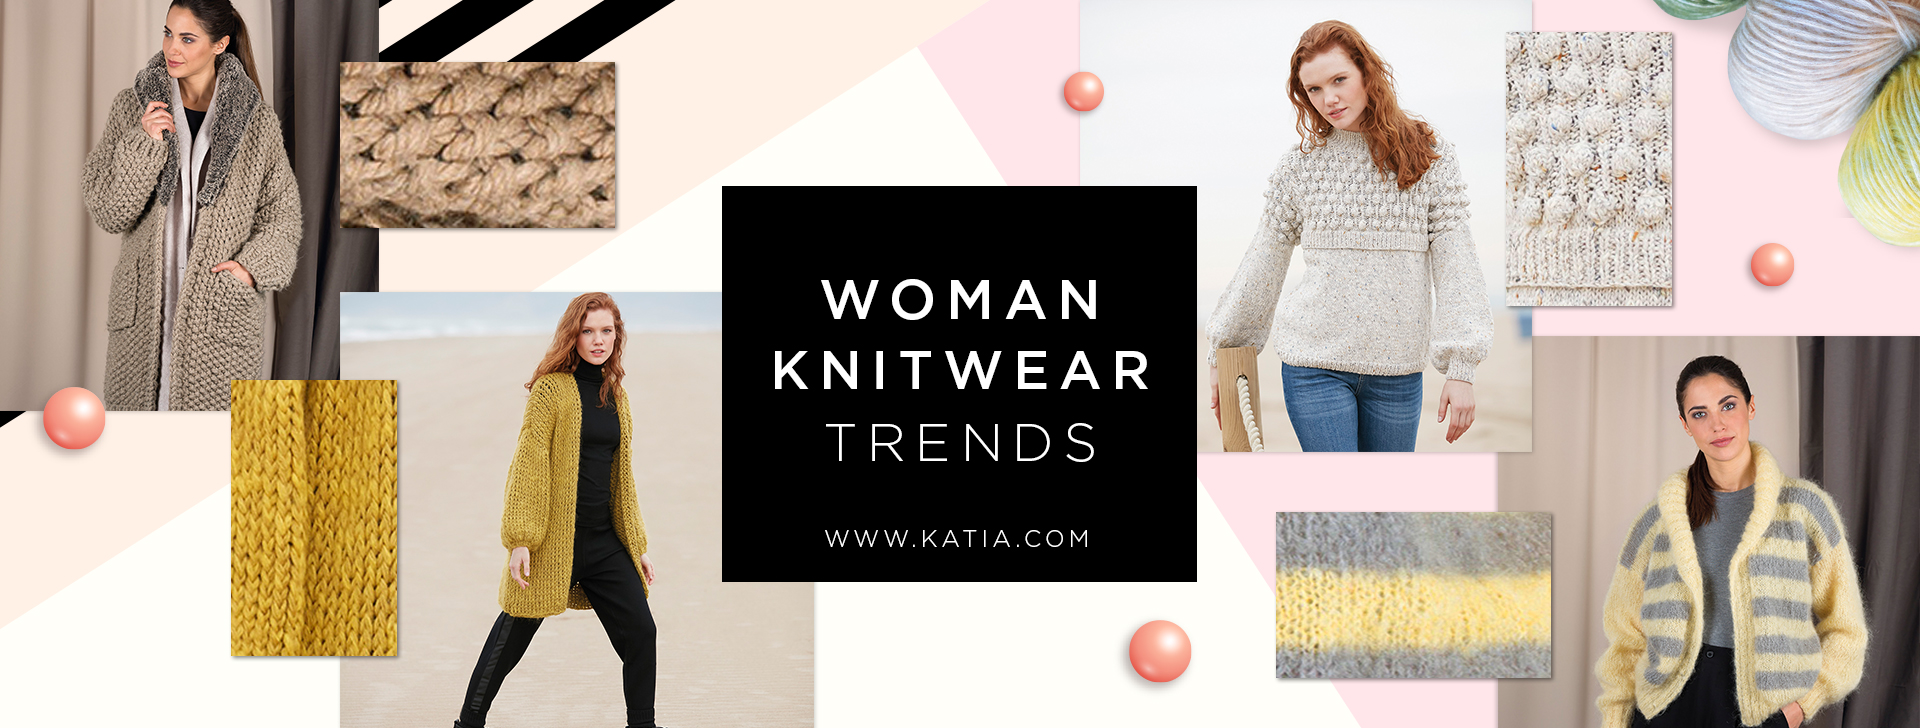 9f9ce5191116 These are the 5 fashion trends that will be parading on your knitting  needles this Autumn Winter 2018 2019